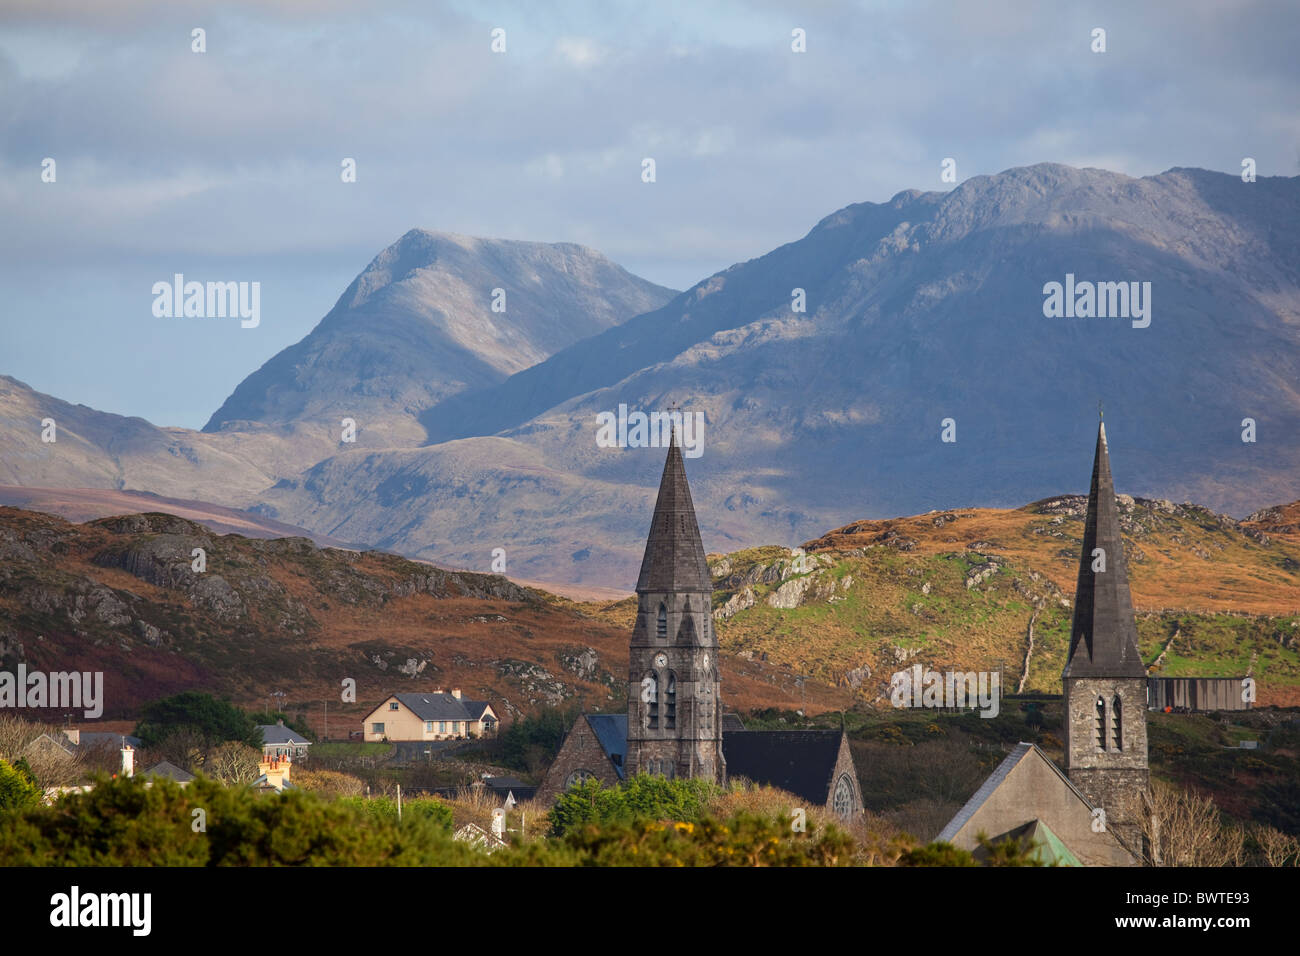 Church spires of the Connemara town of Clifden, in Ireland, with the Twelve Bens mountains in the background - Stock Image